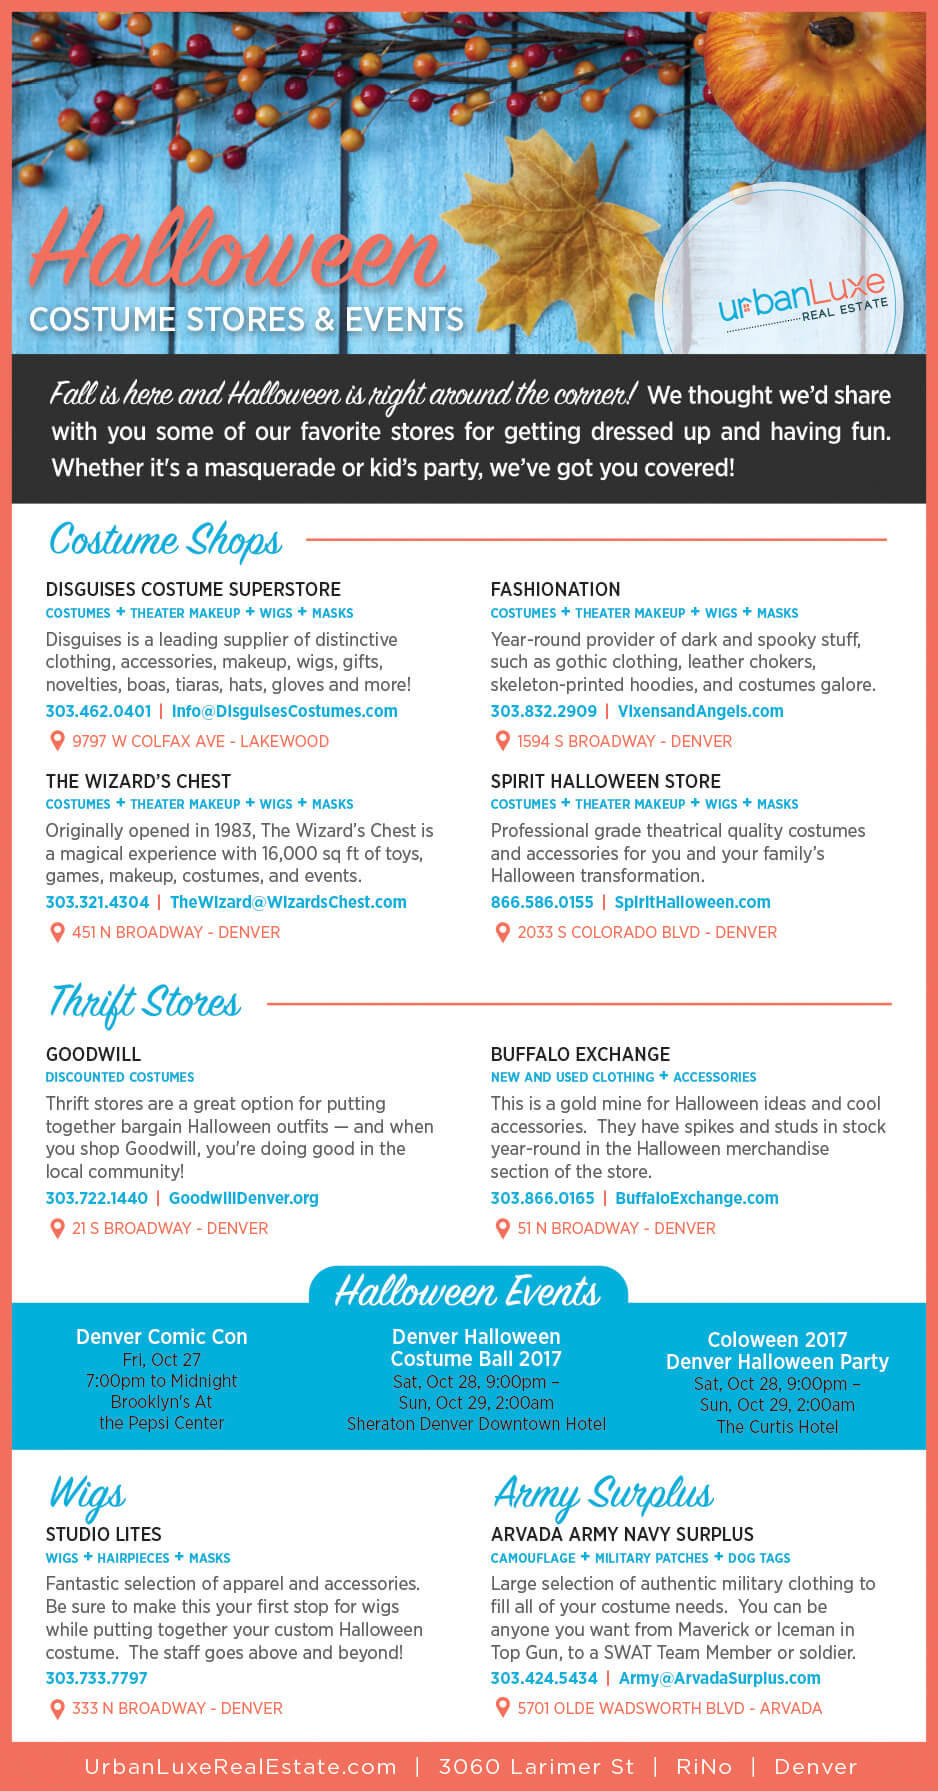 halloween costume stores events